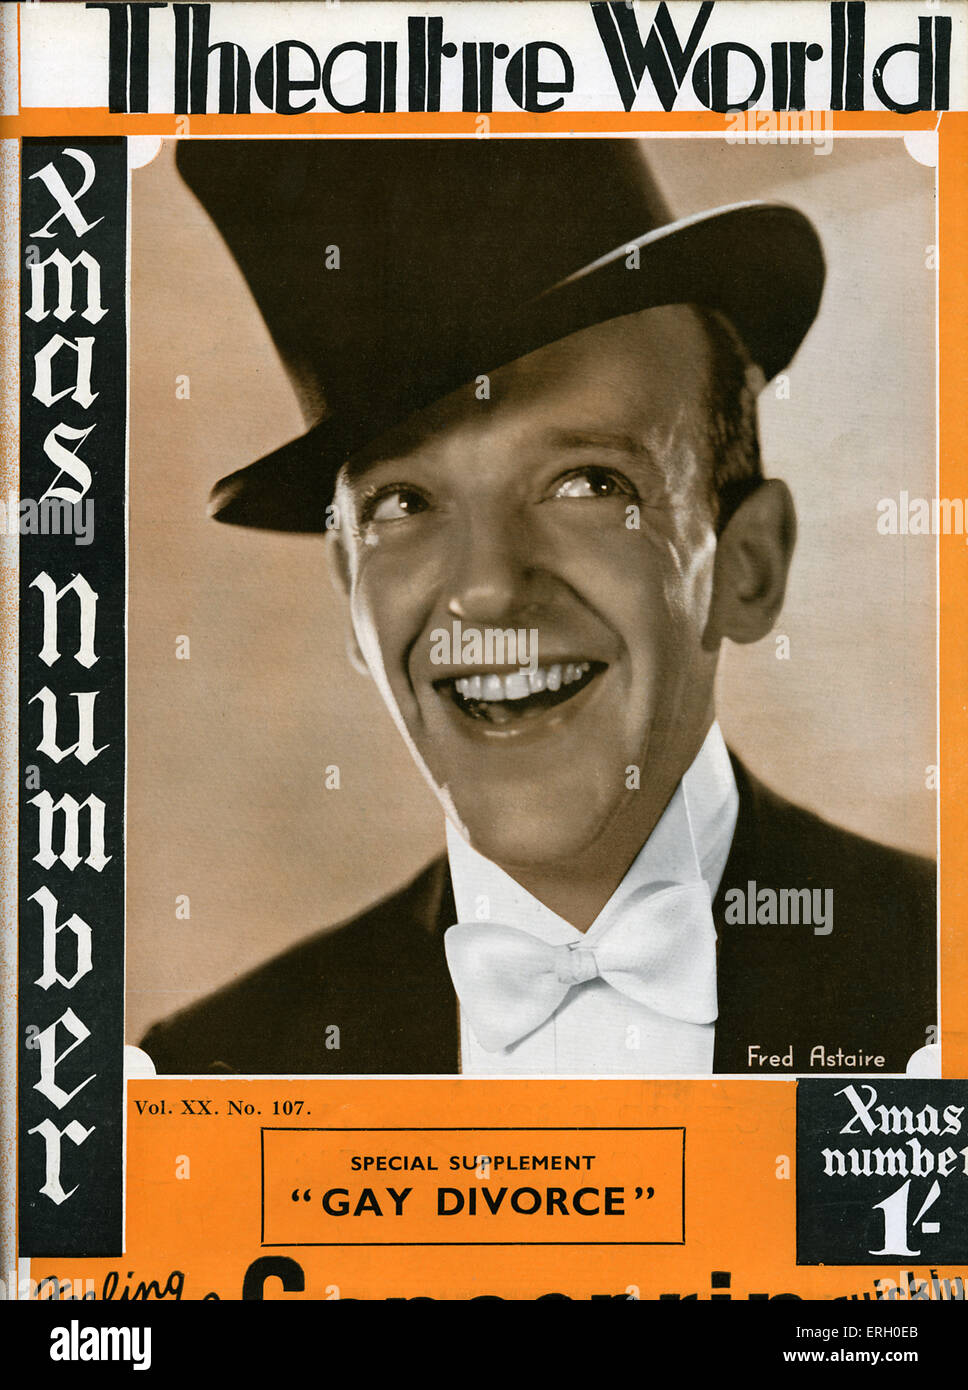 Fred Astaire on the cover of Theatre World, October 1933.  Special supplemt for 'Gay Divorce' by Lee Ephraim - Stock Image